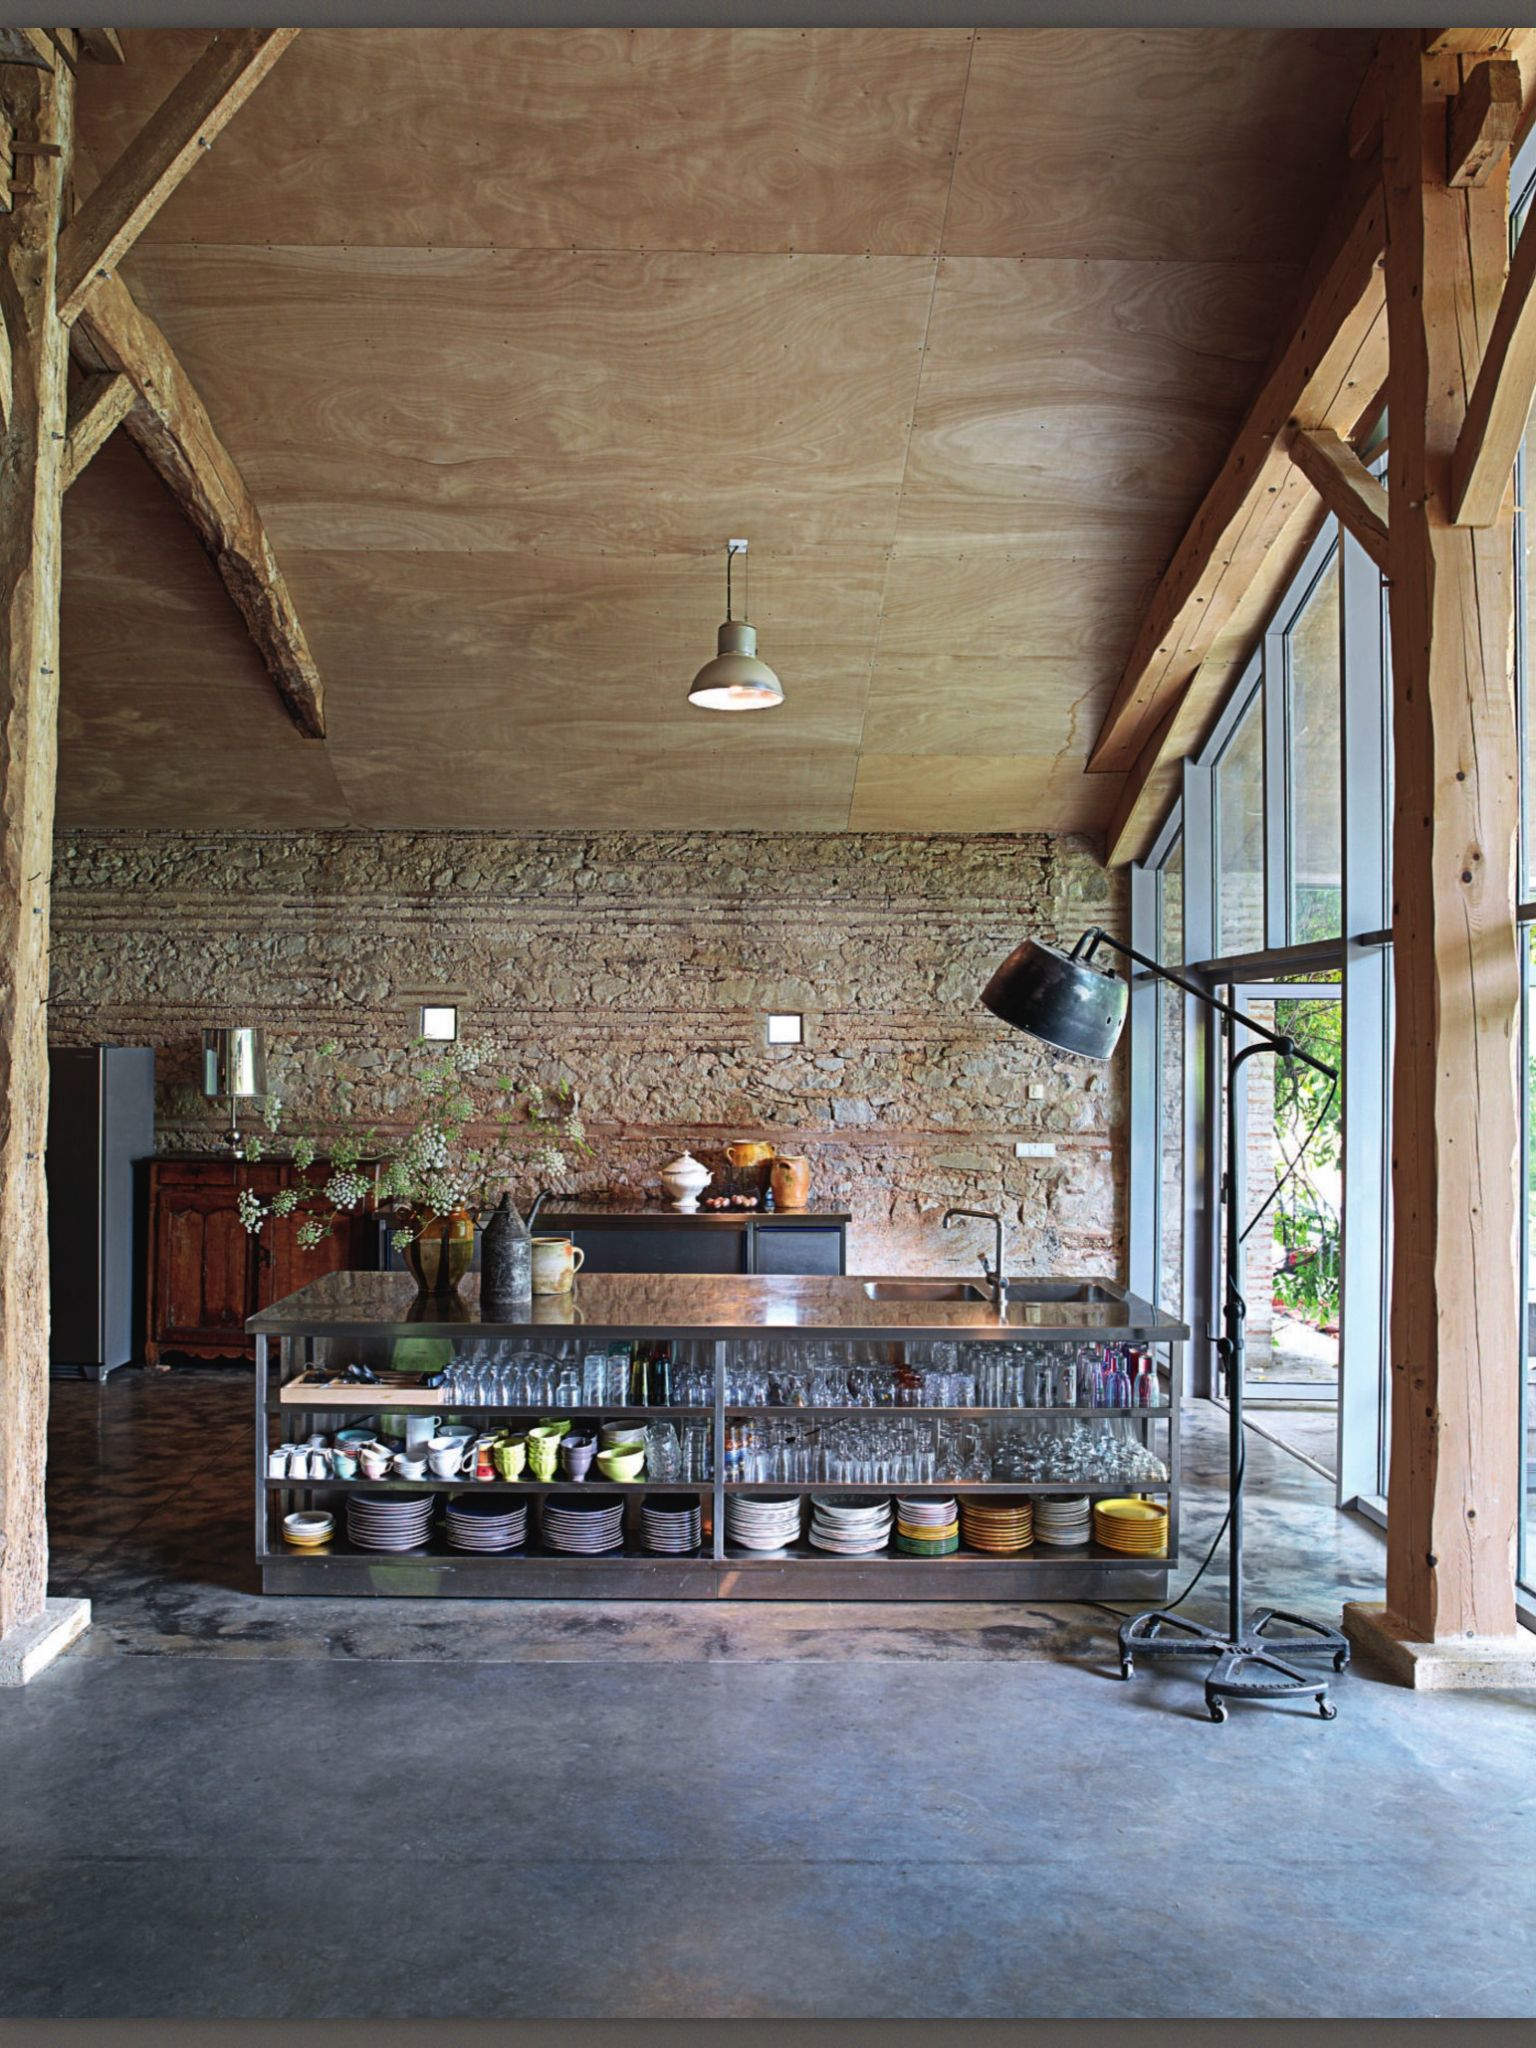 Lots In Rustic Industrial Kitchen - Cement